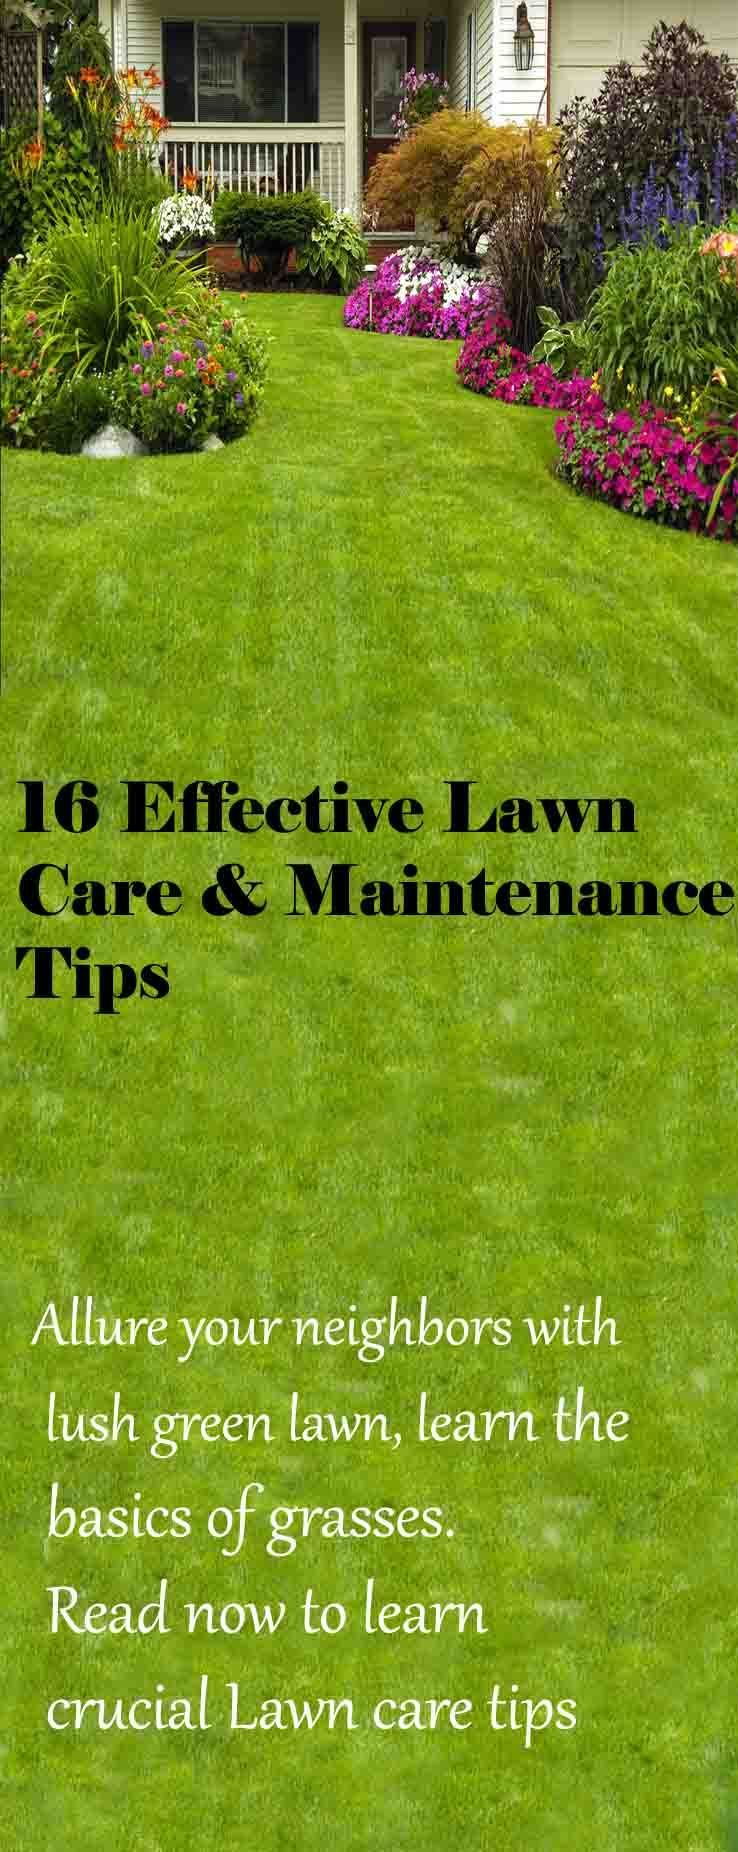 How to have the best lawn ever with these lawn care tips